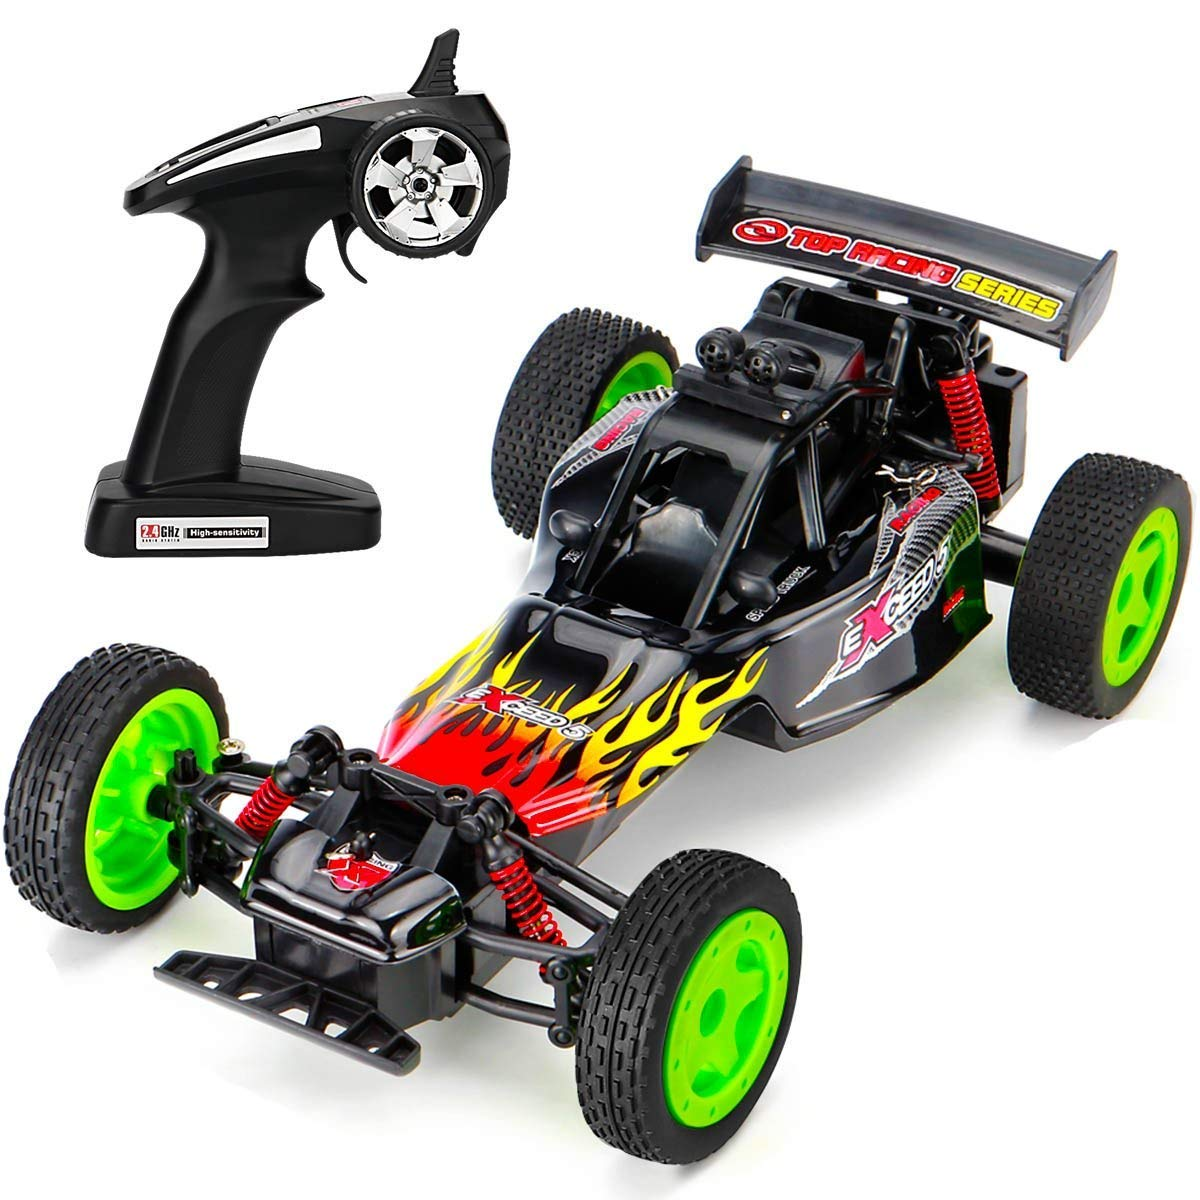 SUBOTECH Electric 1:16 Scale 2.4 GHz Off-Road Vehicle RC High-Speed Racing Car